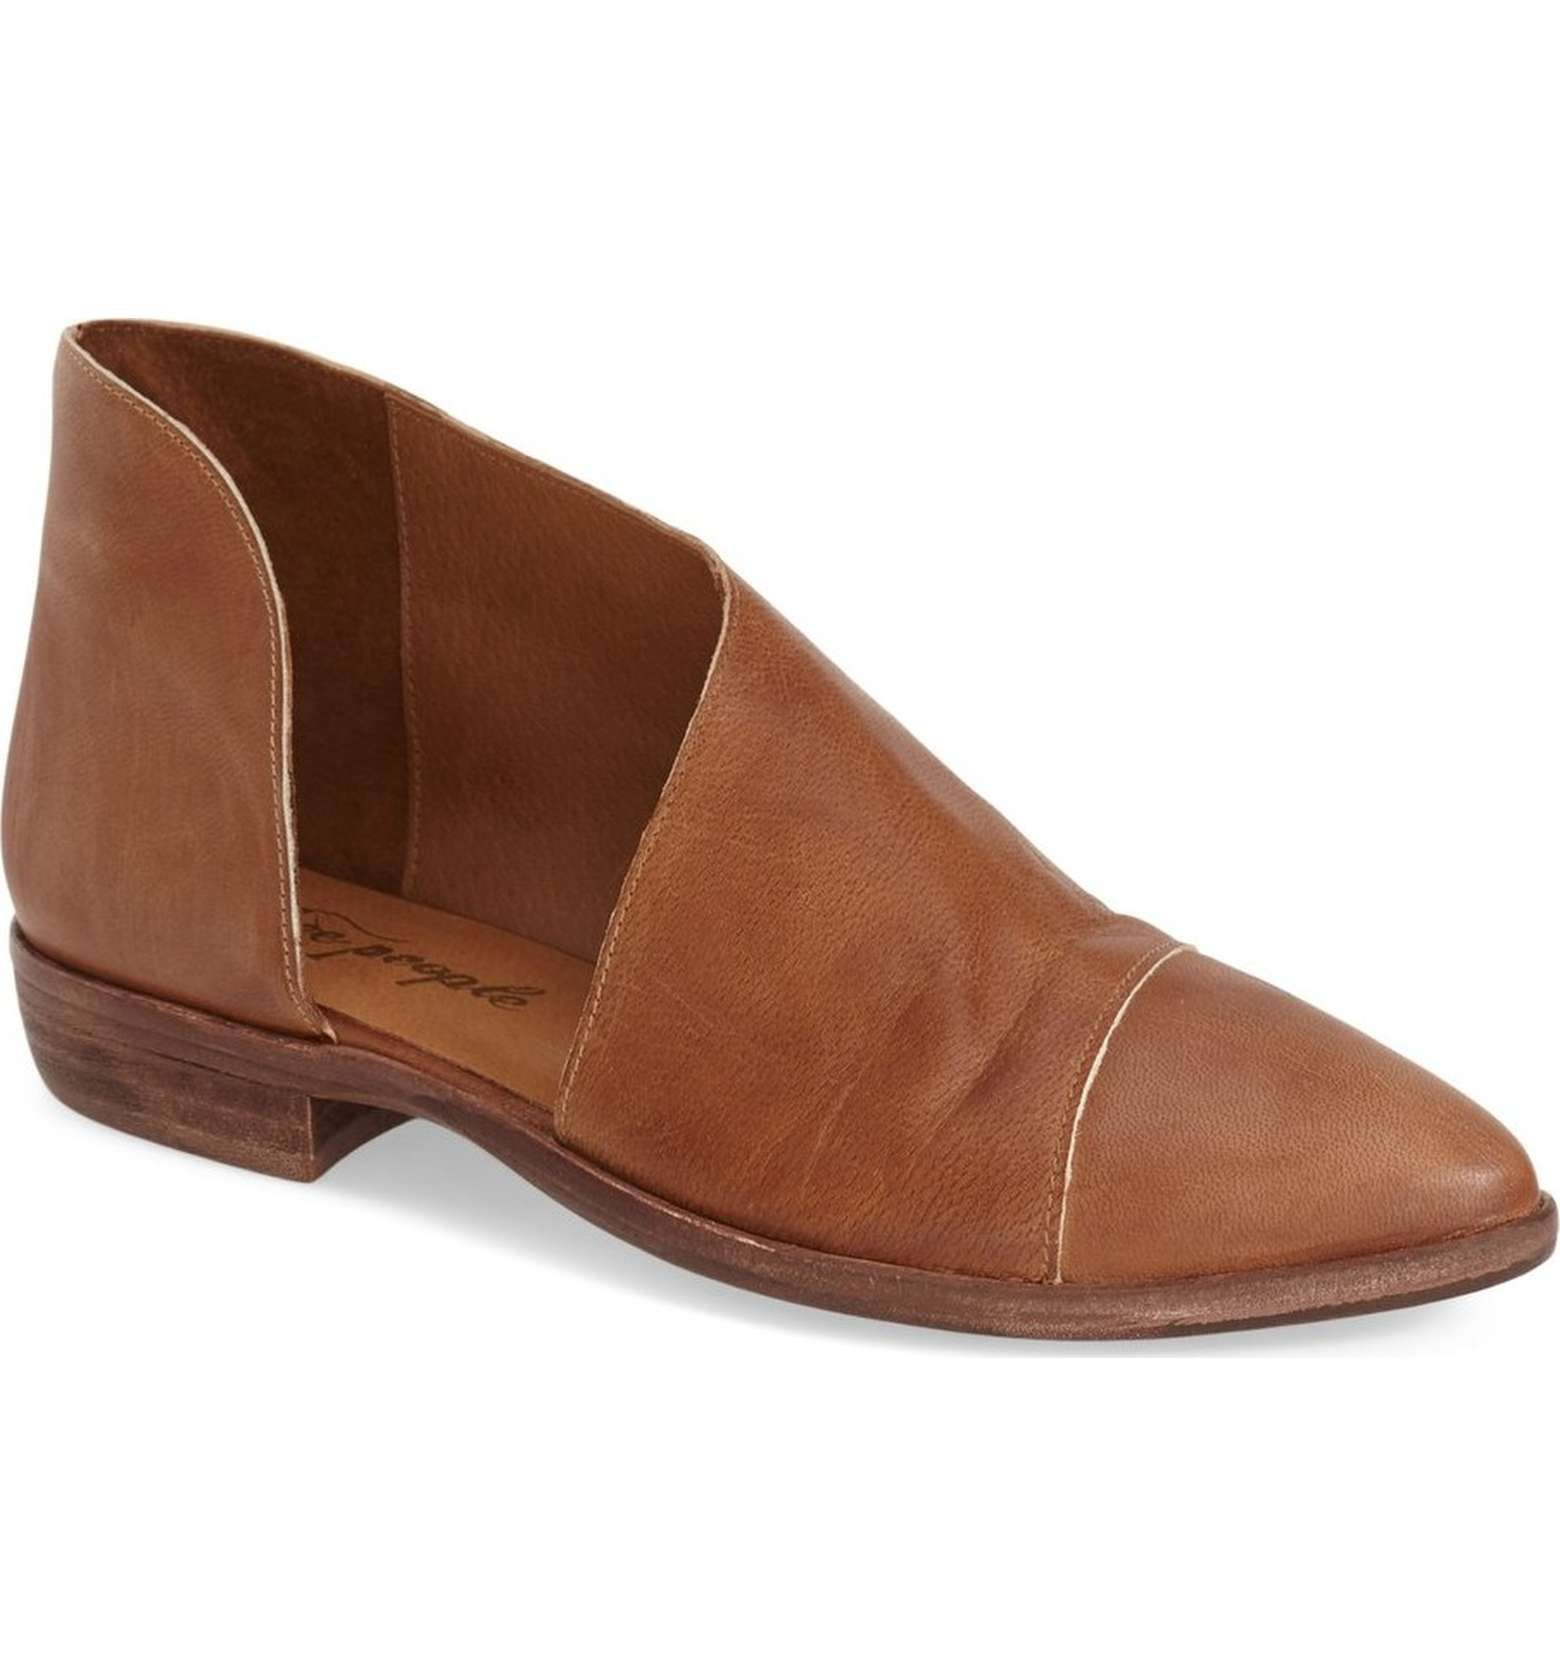 bbdccab97 Joanna Gaines brown flat shoe pointy toe | Joanna Gaines Style ...